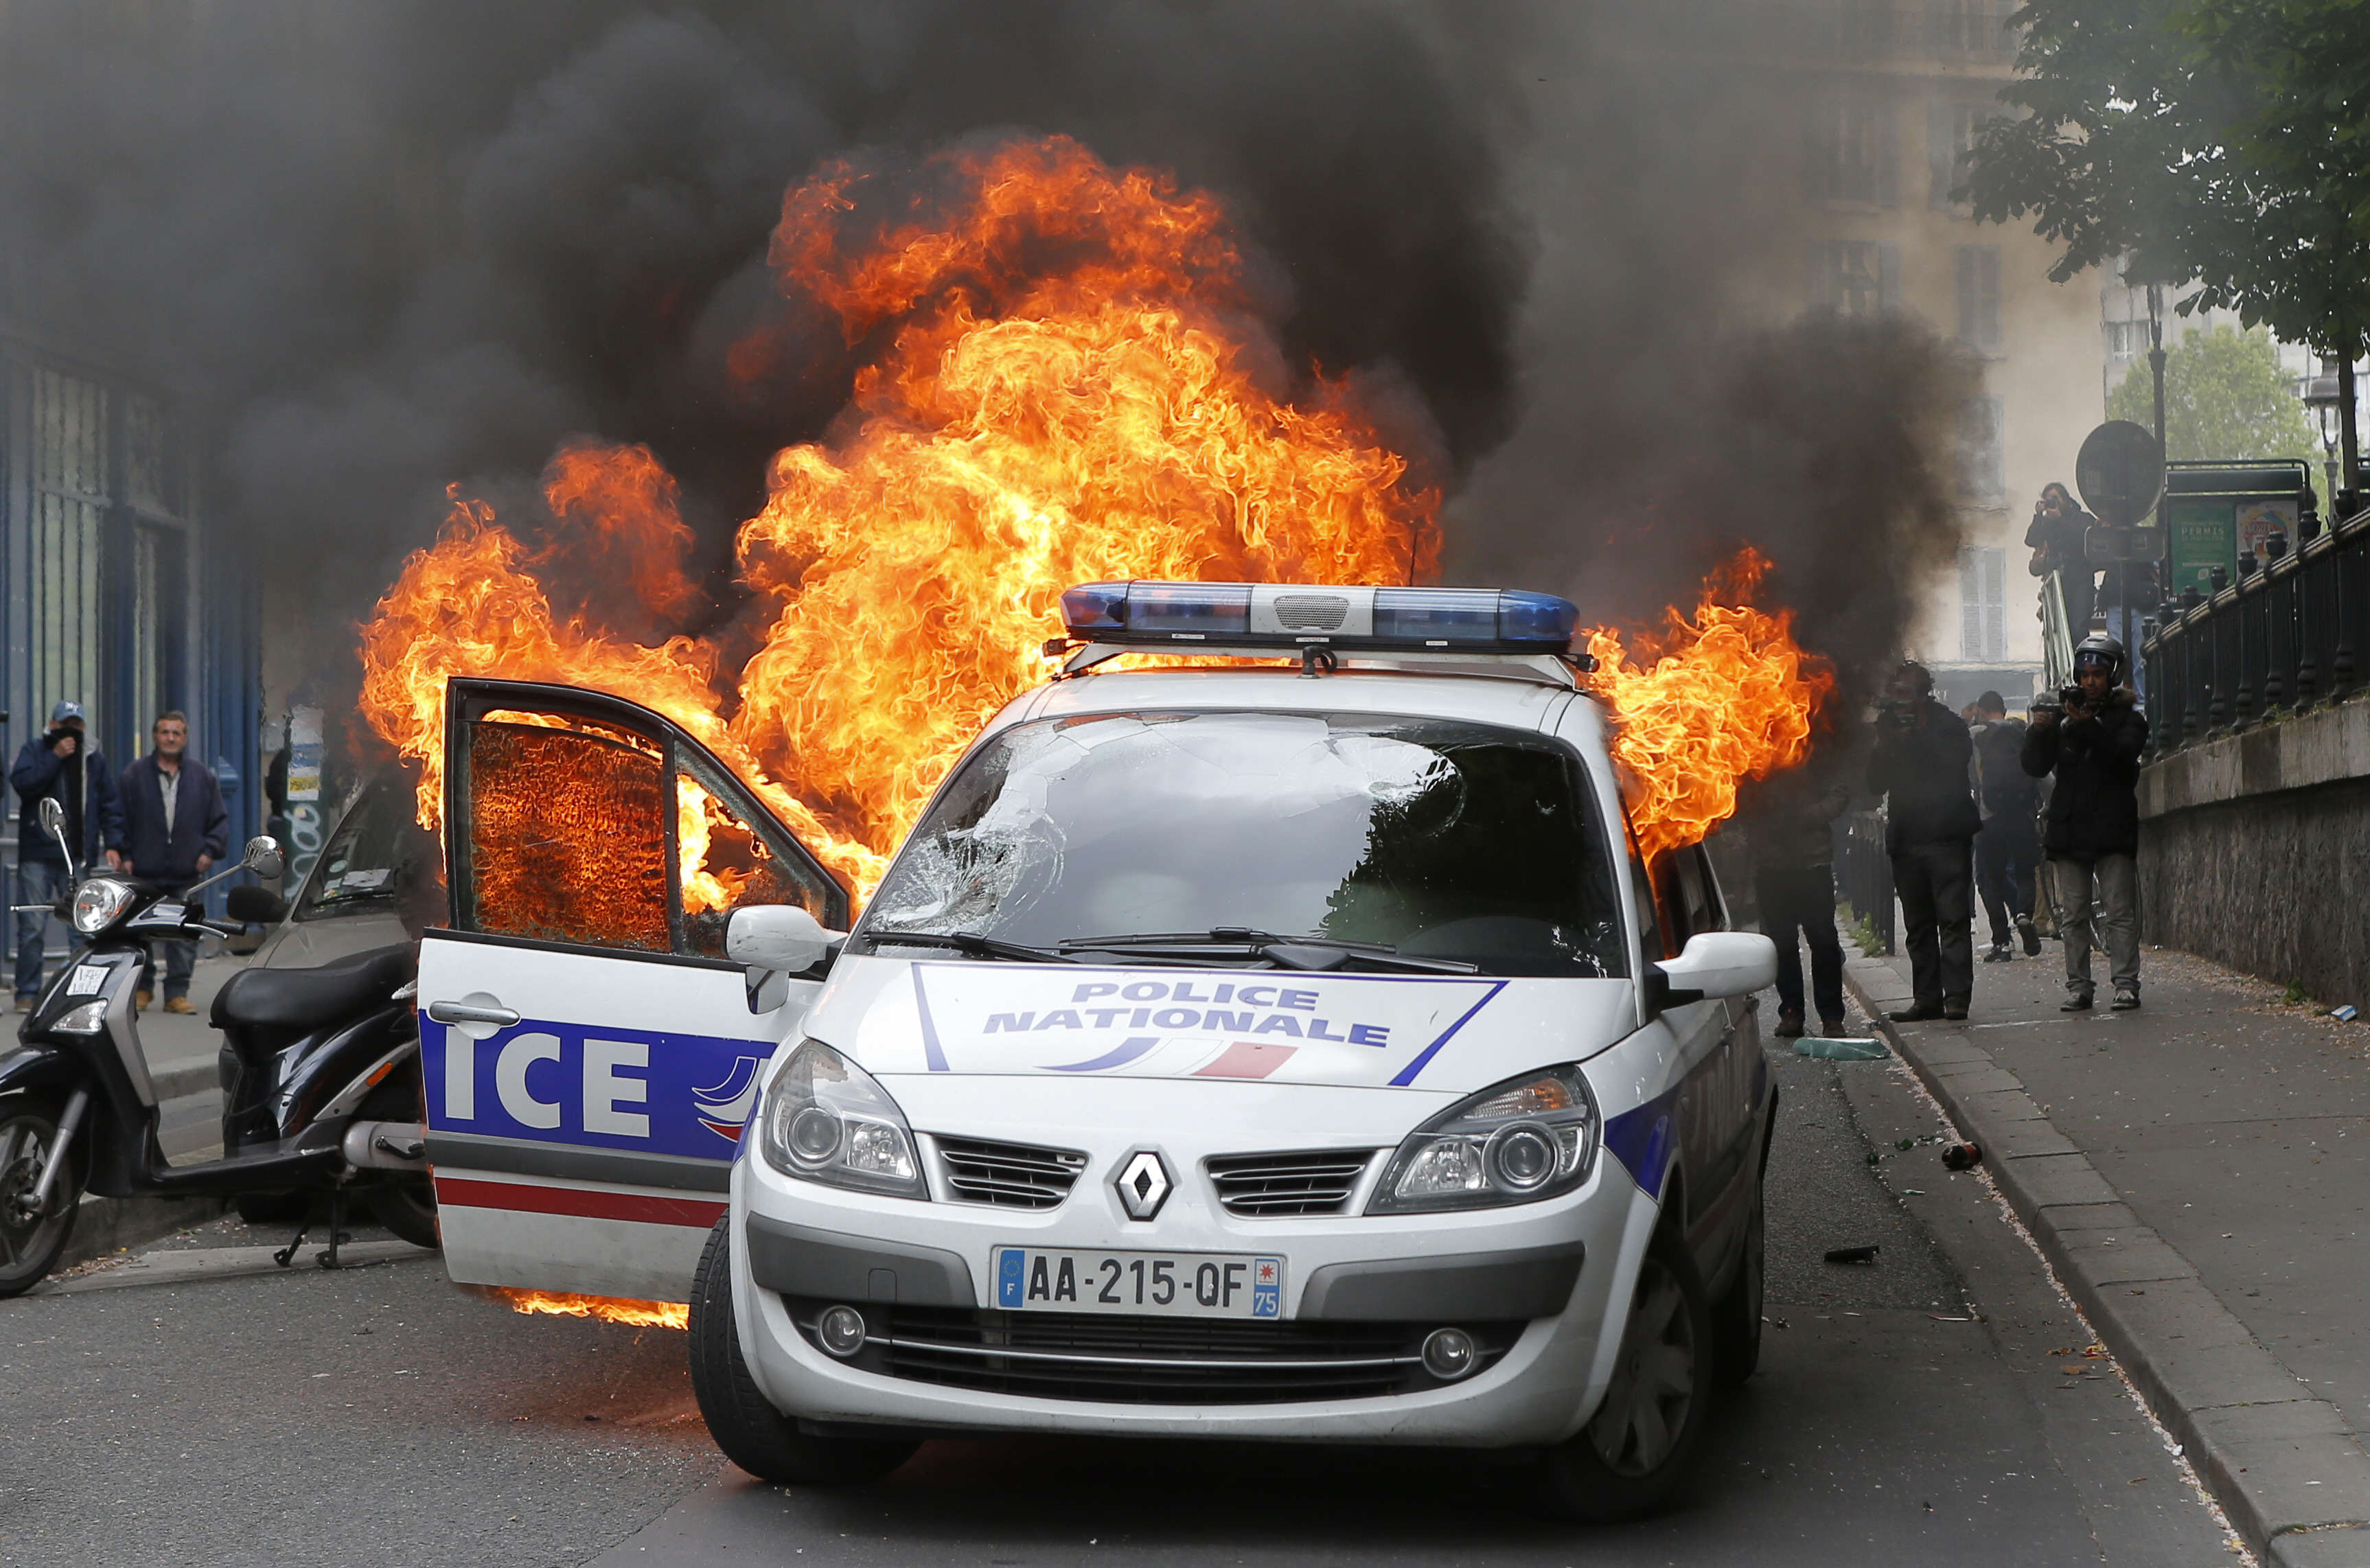 Dramatic Footage Shows Mob Torching Police Car With Officers Inside carfire2